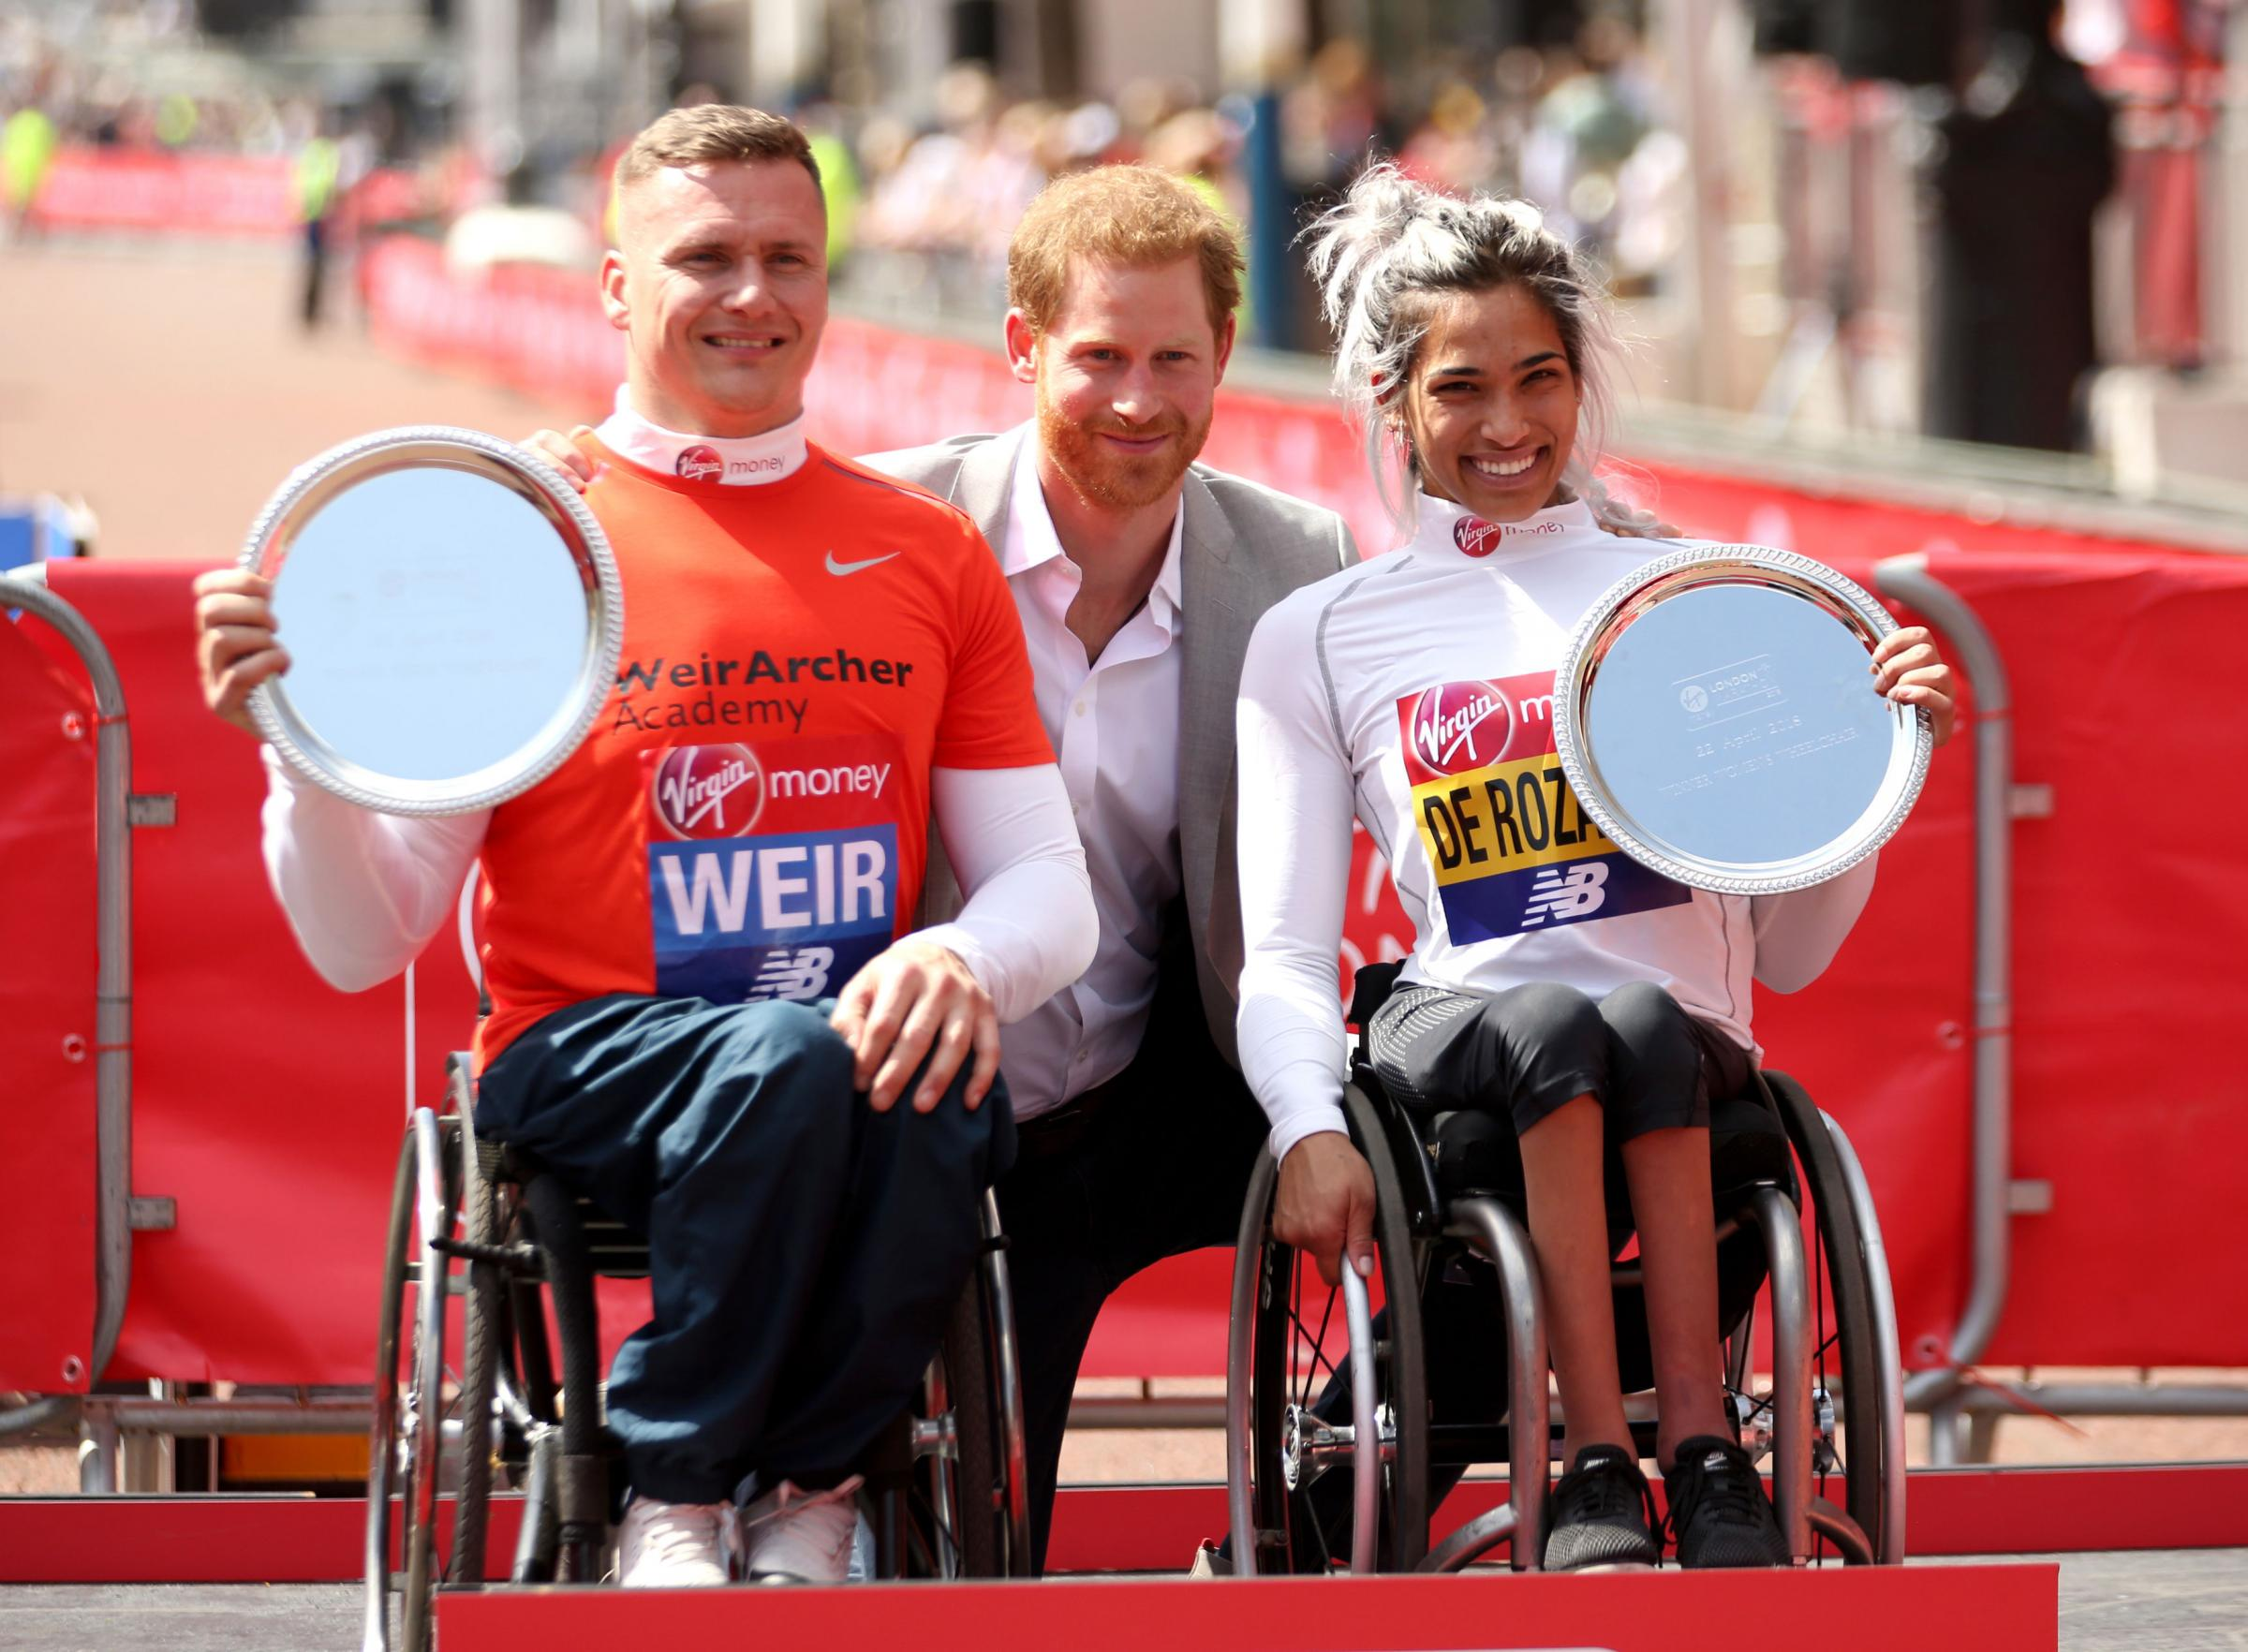 David Weir and Australia's Madison de Rozario pose with their trophies. Photo credit: Paul Harding/PA Wire